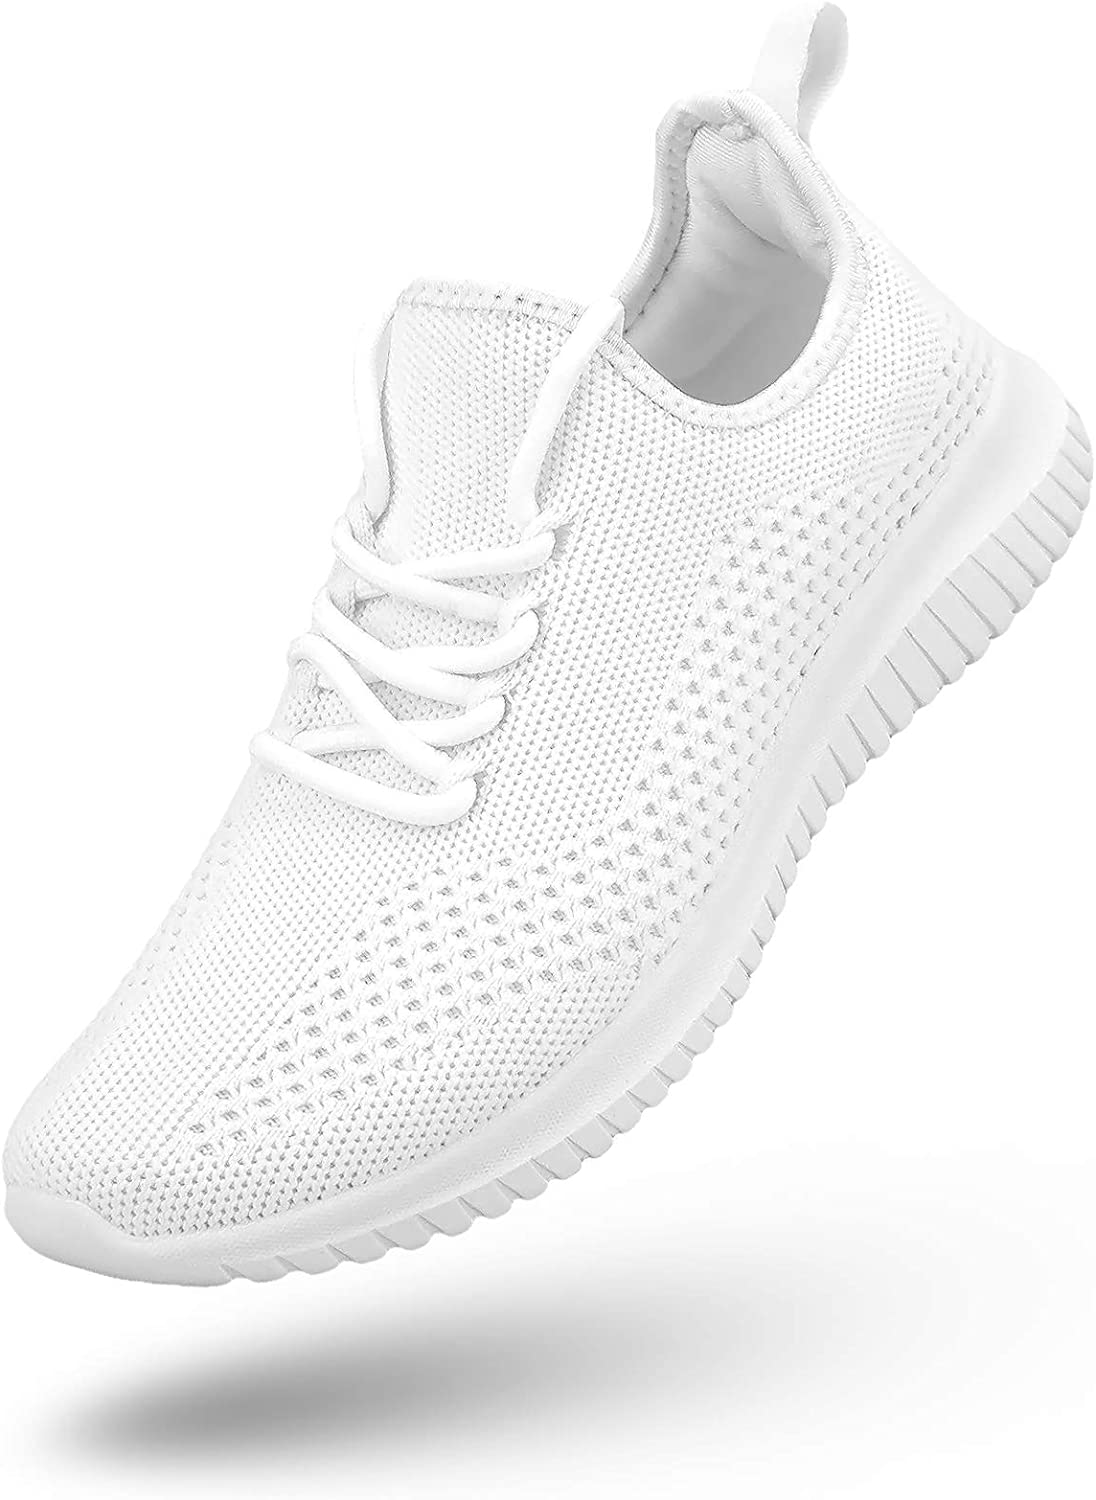 Sumotia Sneakers for Popular brand half Women an Fashionable Breathable Lightweight